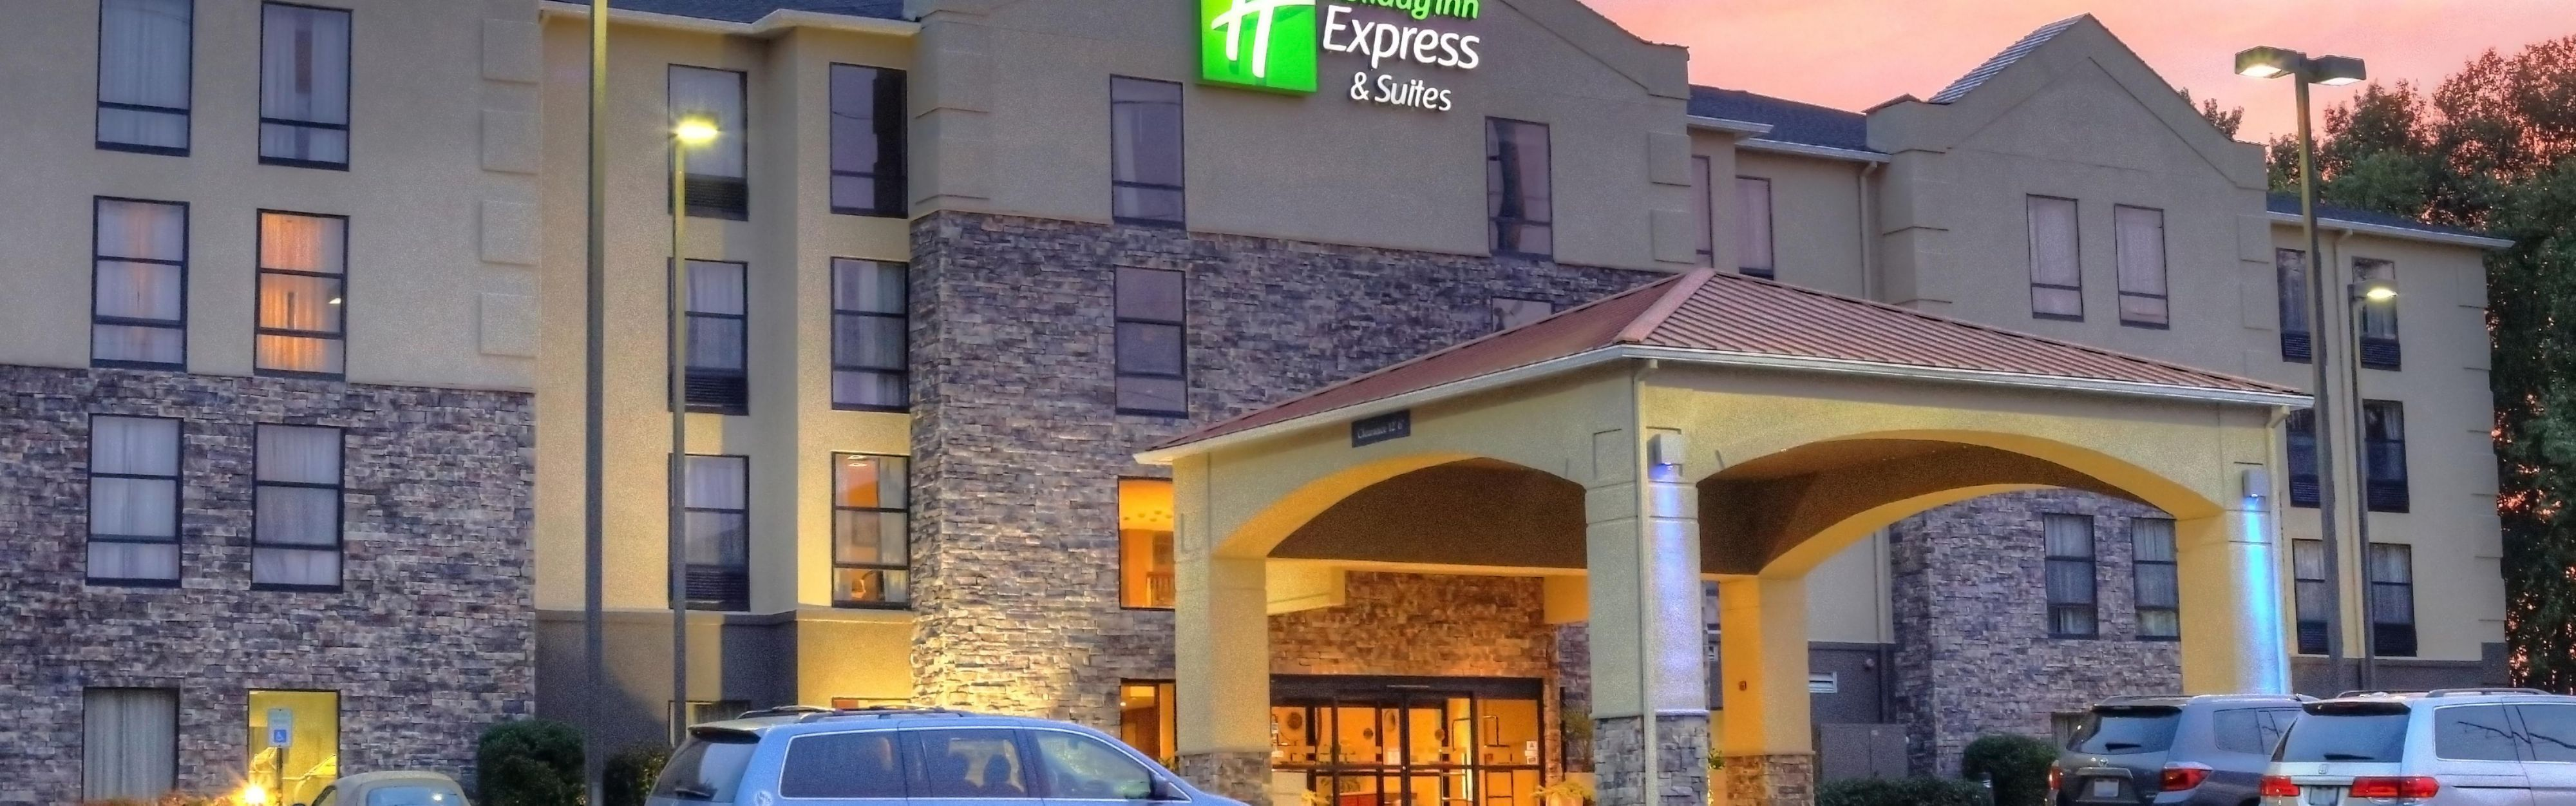 Holiday Inn Express & Suites Blythewood image 0